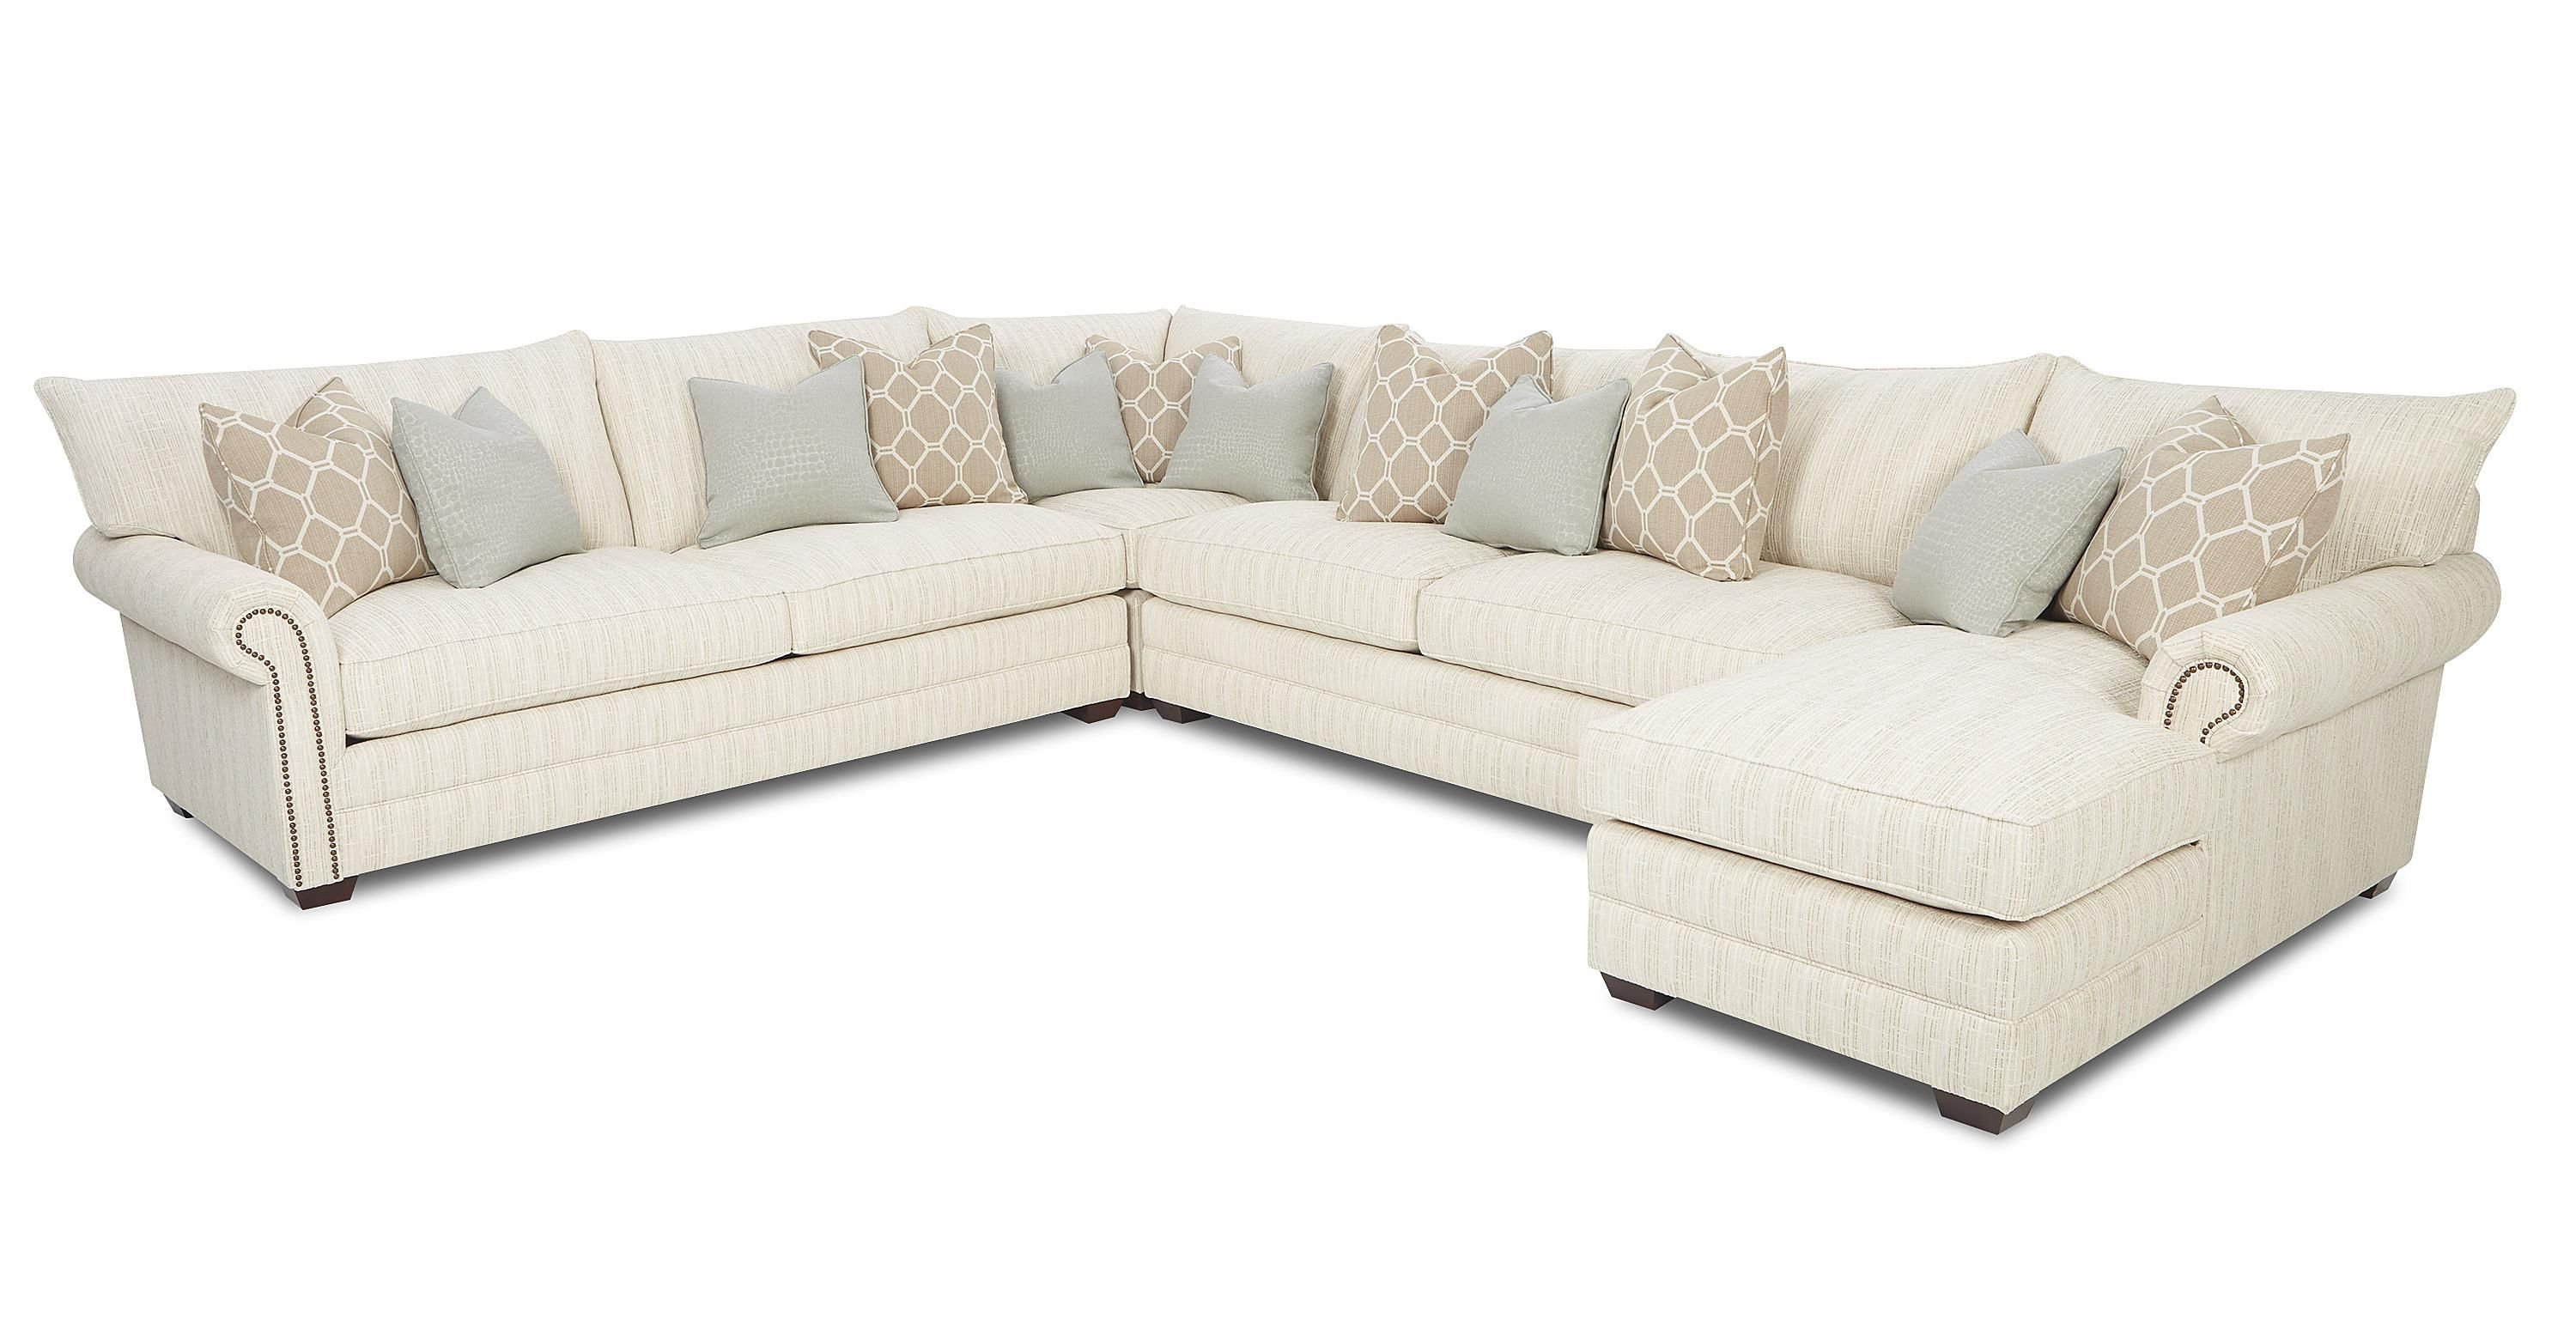 sofa mart indianapolis white leather living room design huntley traditional sectional with nailhead trim and